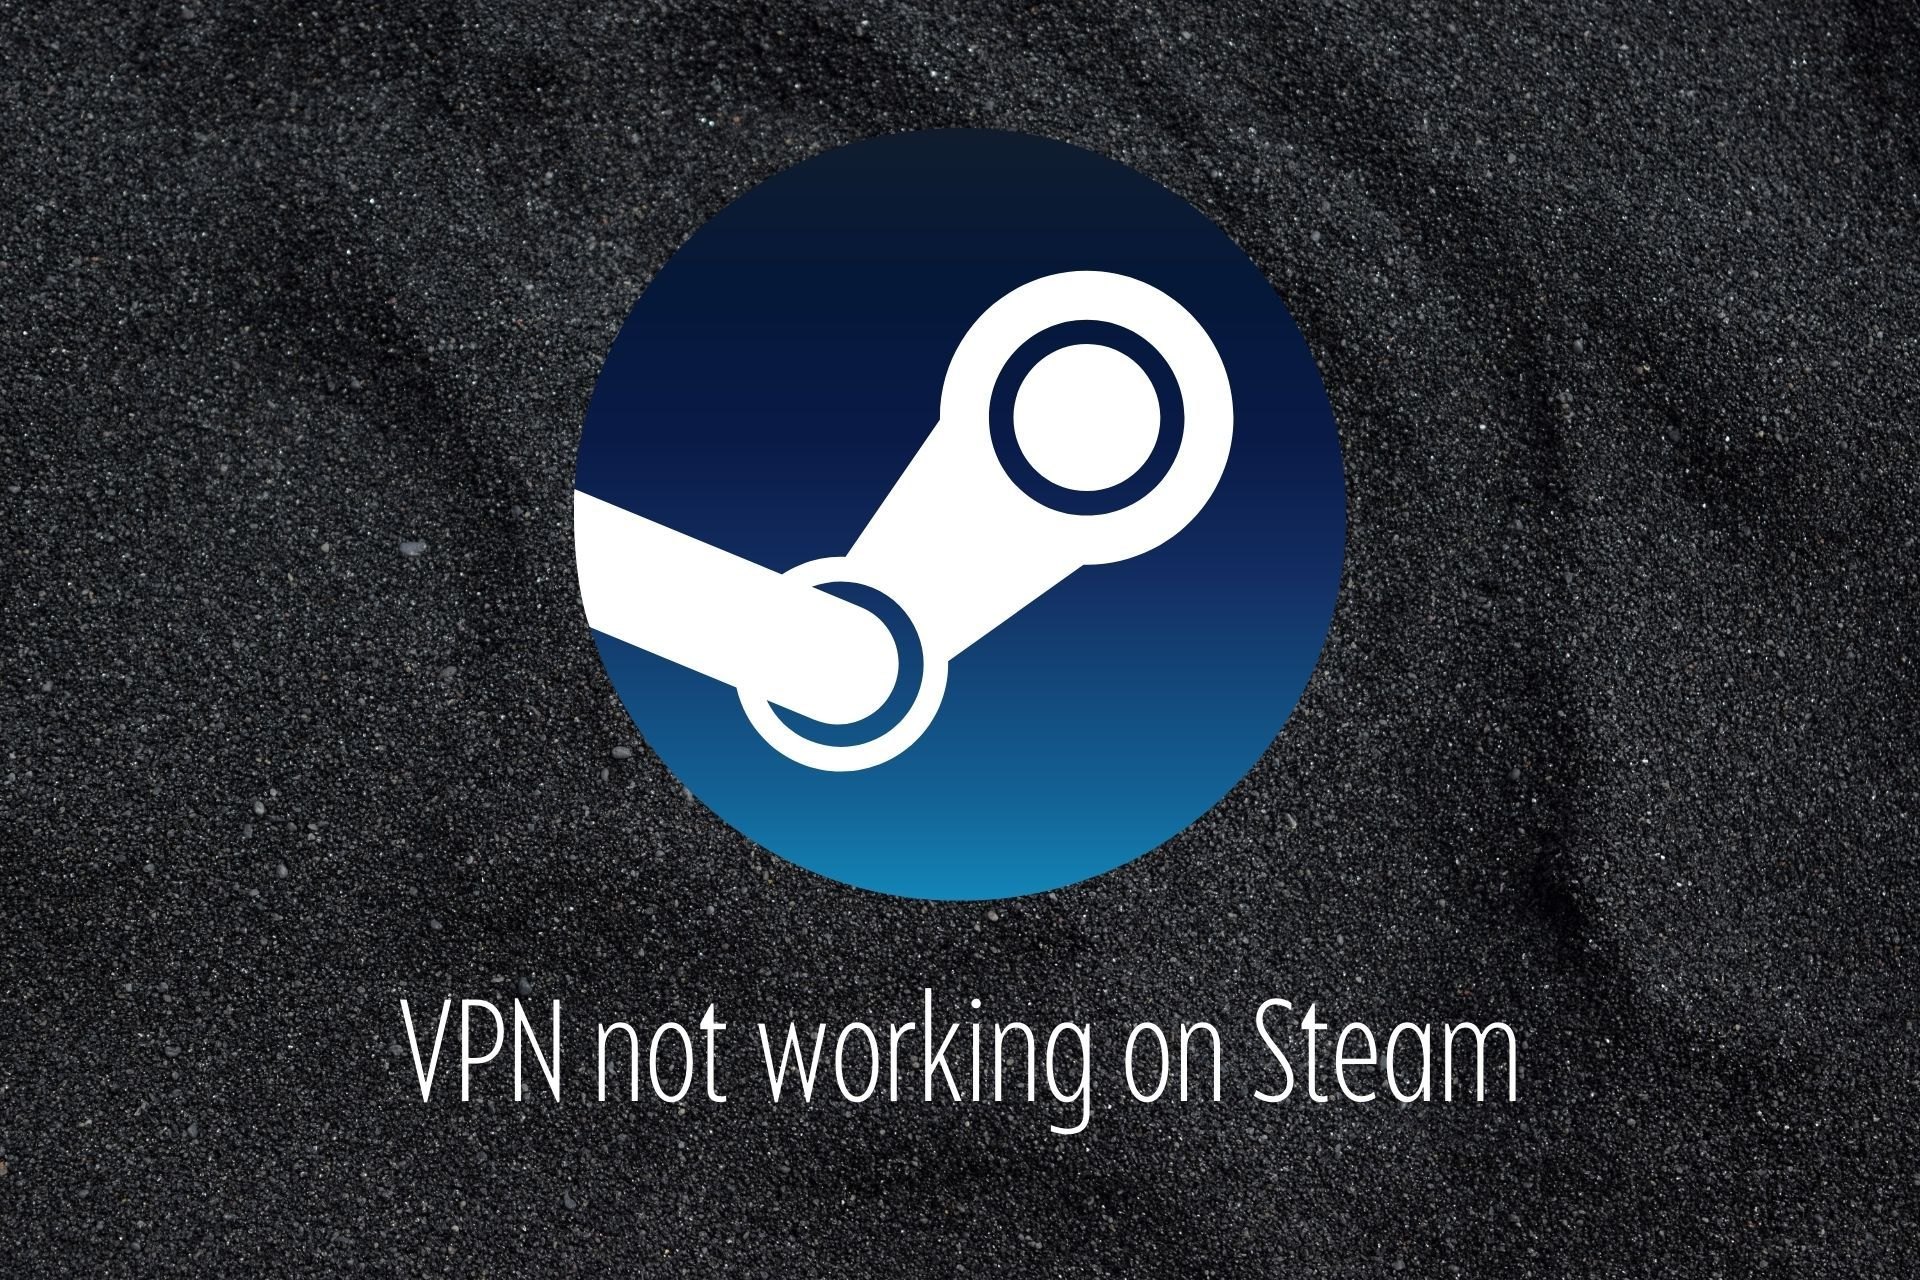 71fb6c280036b891ed7c0410aabe9193 - Can You Get Banned For Using Vpn On Steam